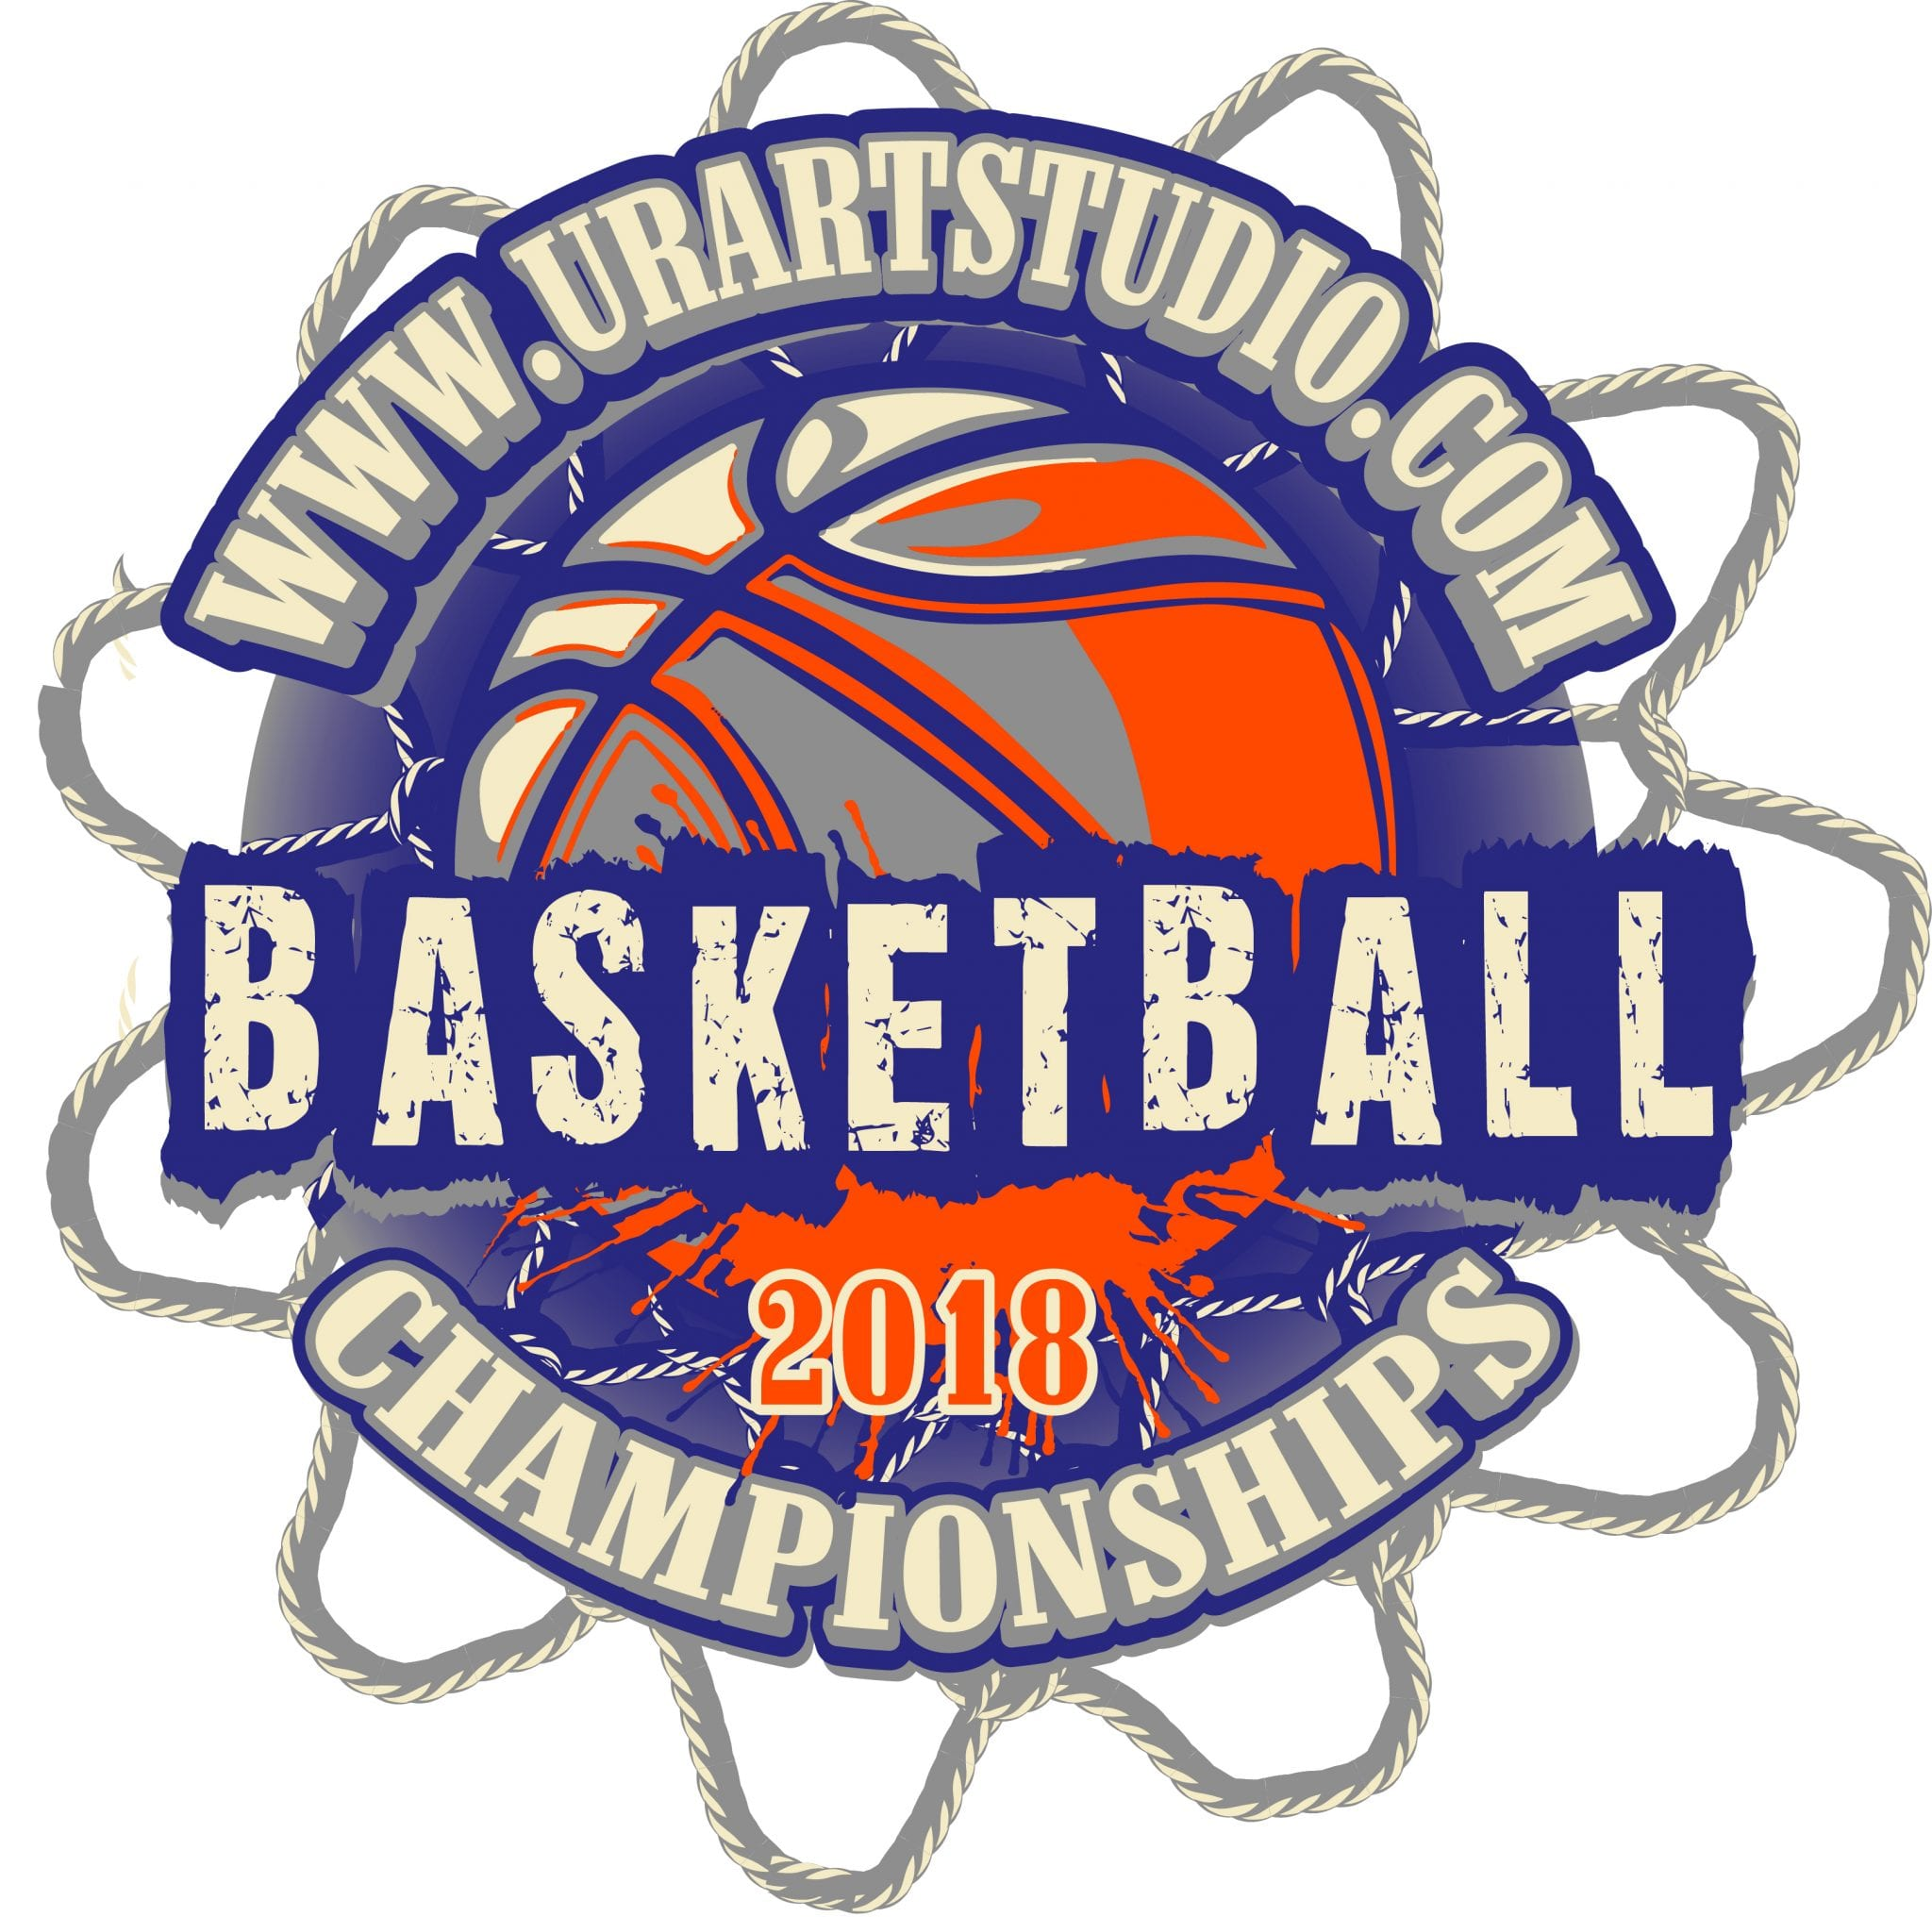 BASKETBALL 2018 CHAMPIONSHIPS t-shirt vector logo design for print